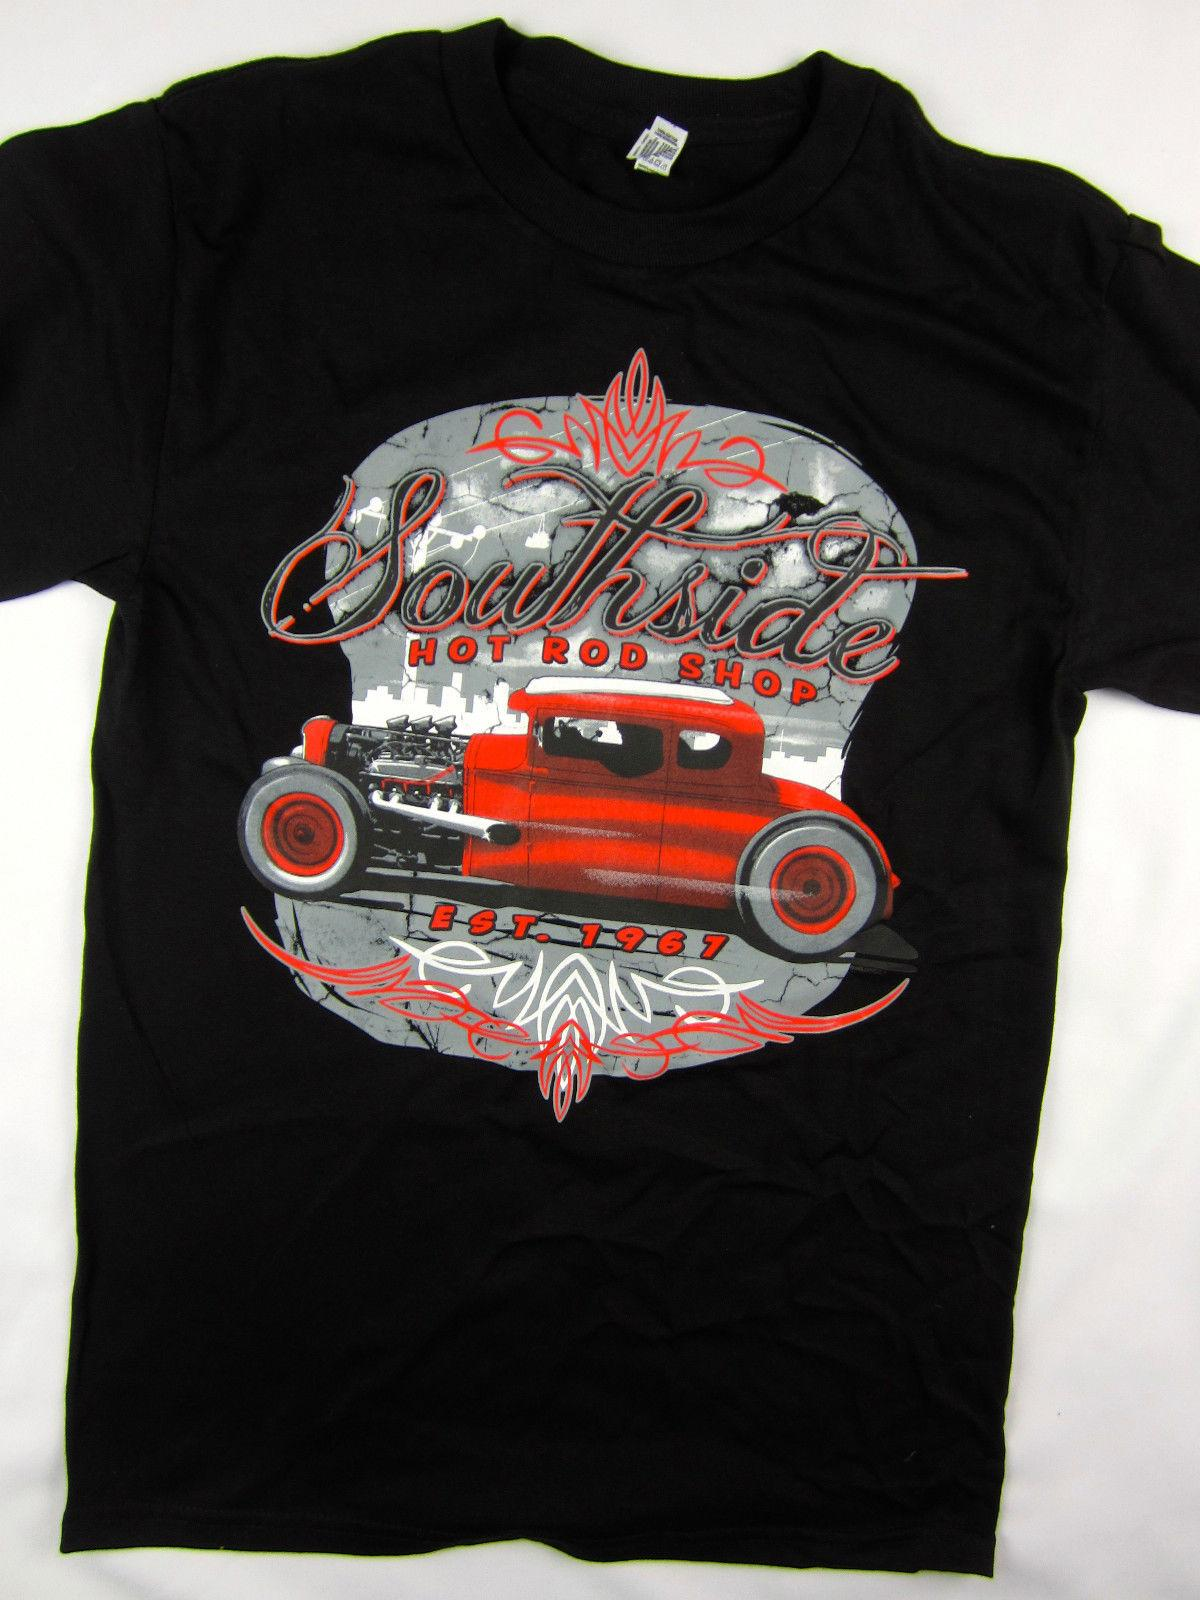 4fc6d598 South Side Hot Rod Garage Racer 1967 Tee Shirt Men'S Black Choose A Size  Classic Quality High T Shirt Order Tee Shirts T Shirt With Design From  Qz614445917, ...